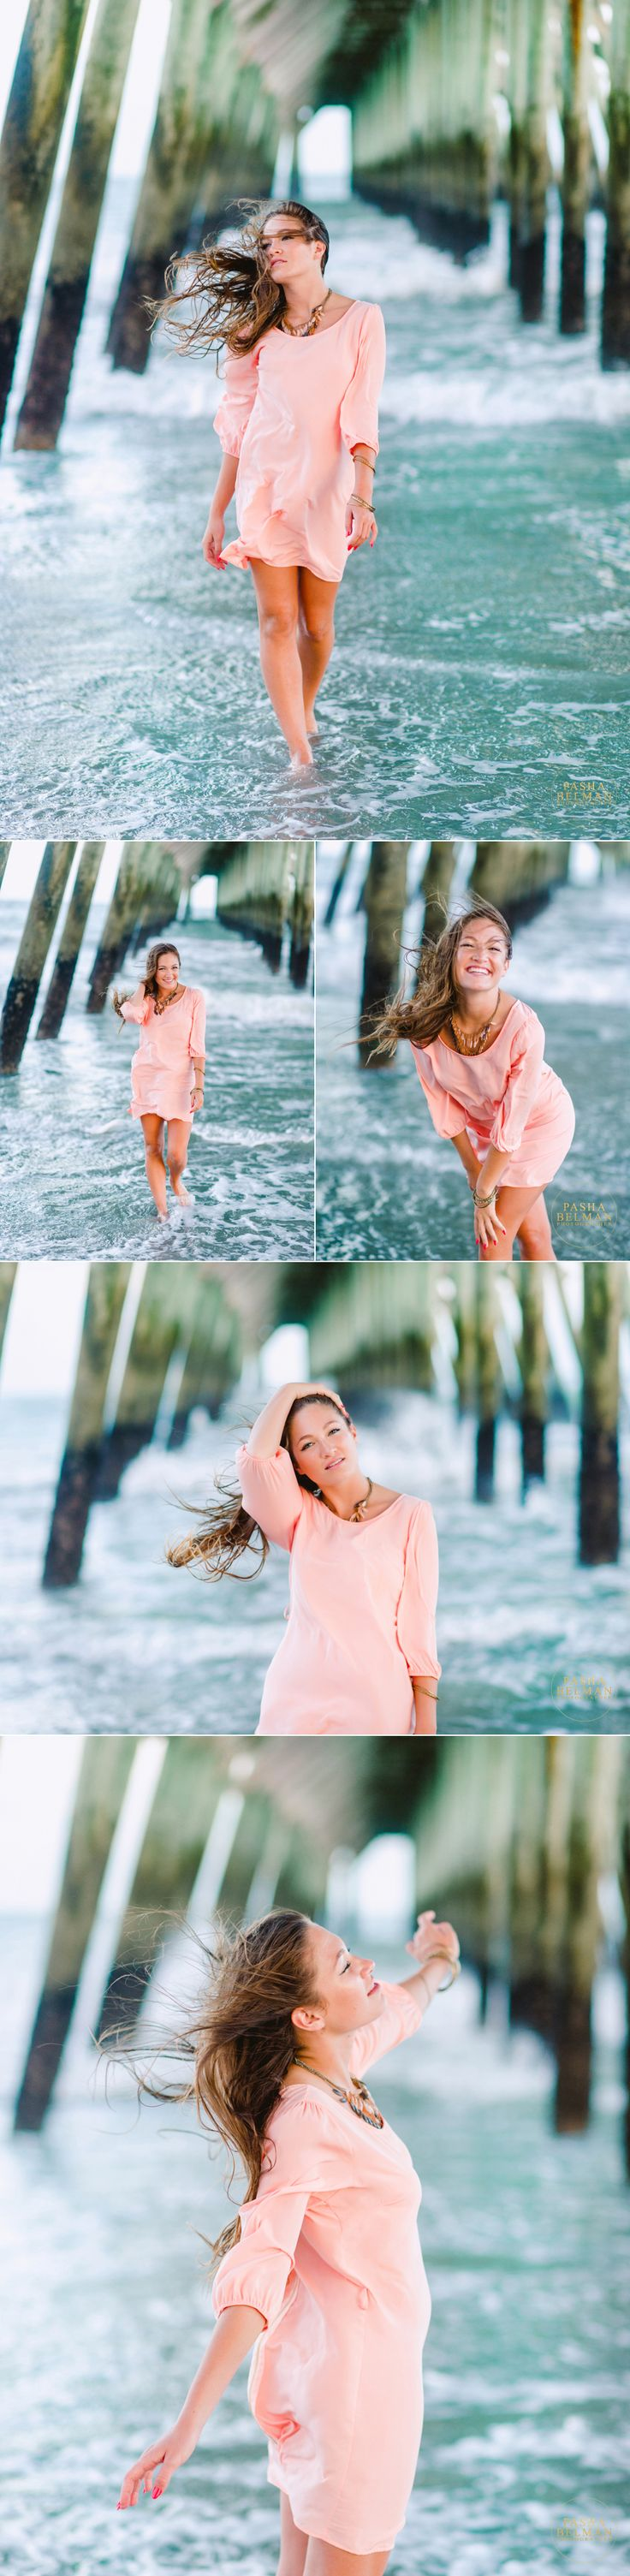 Senior pictures ideas for girls | Charleston senior pictures | myrtle beach high…